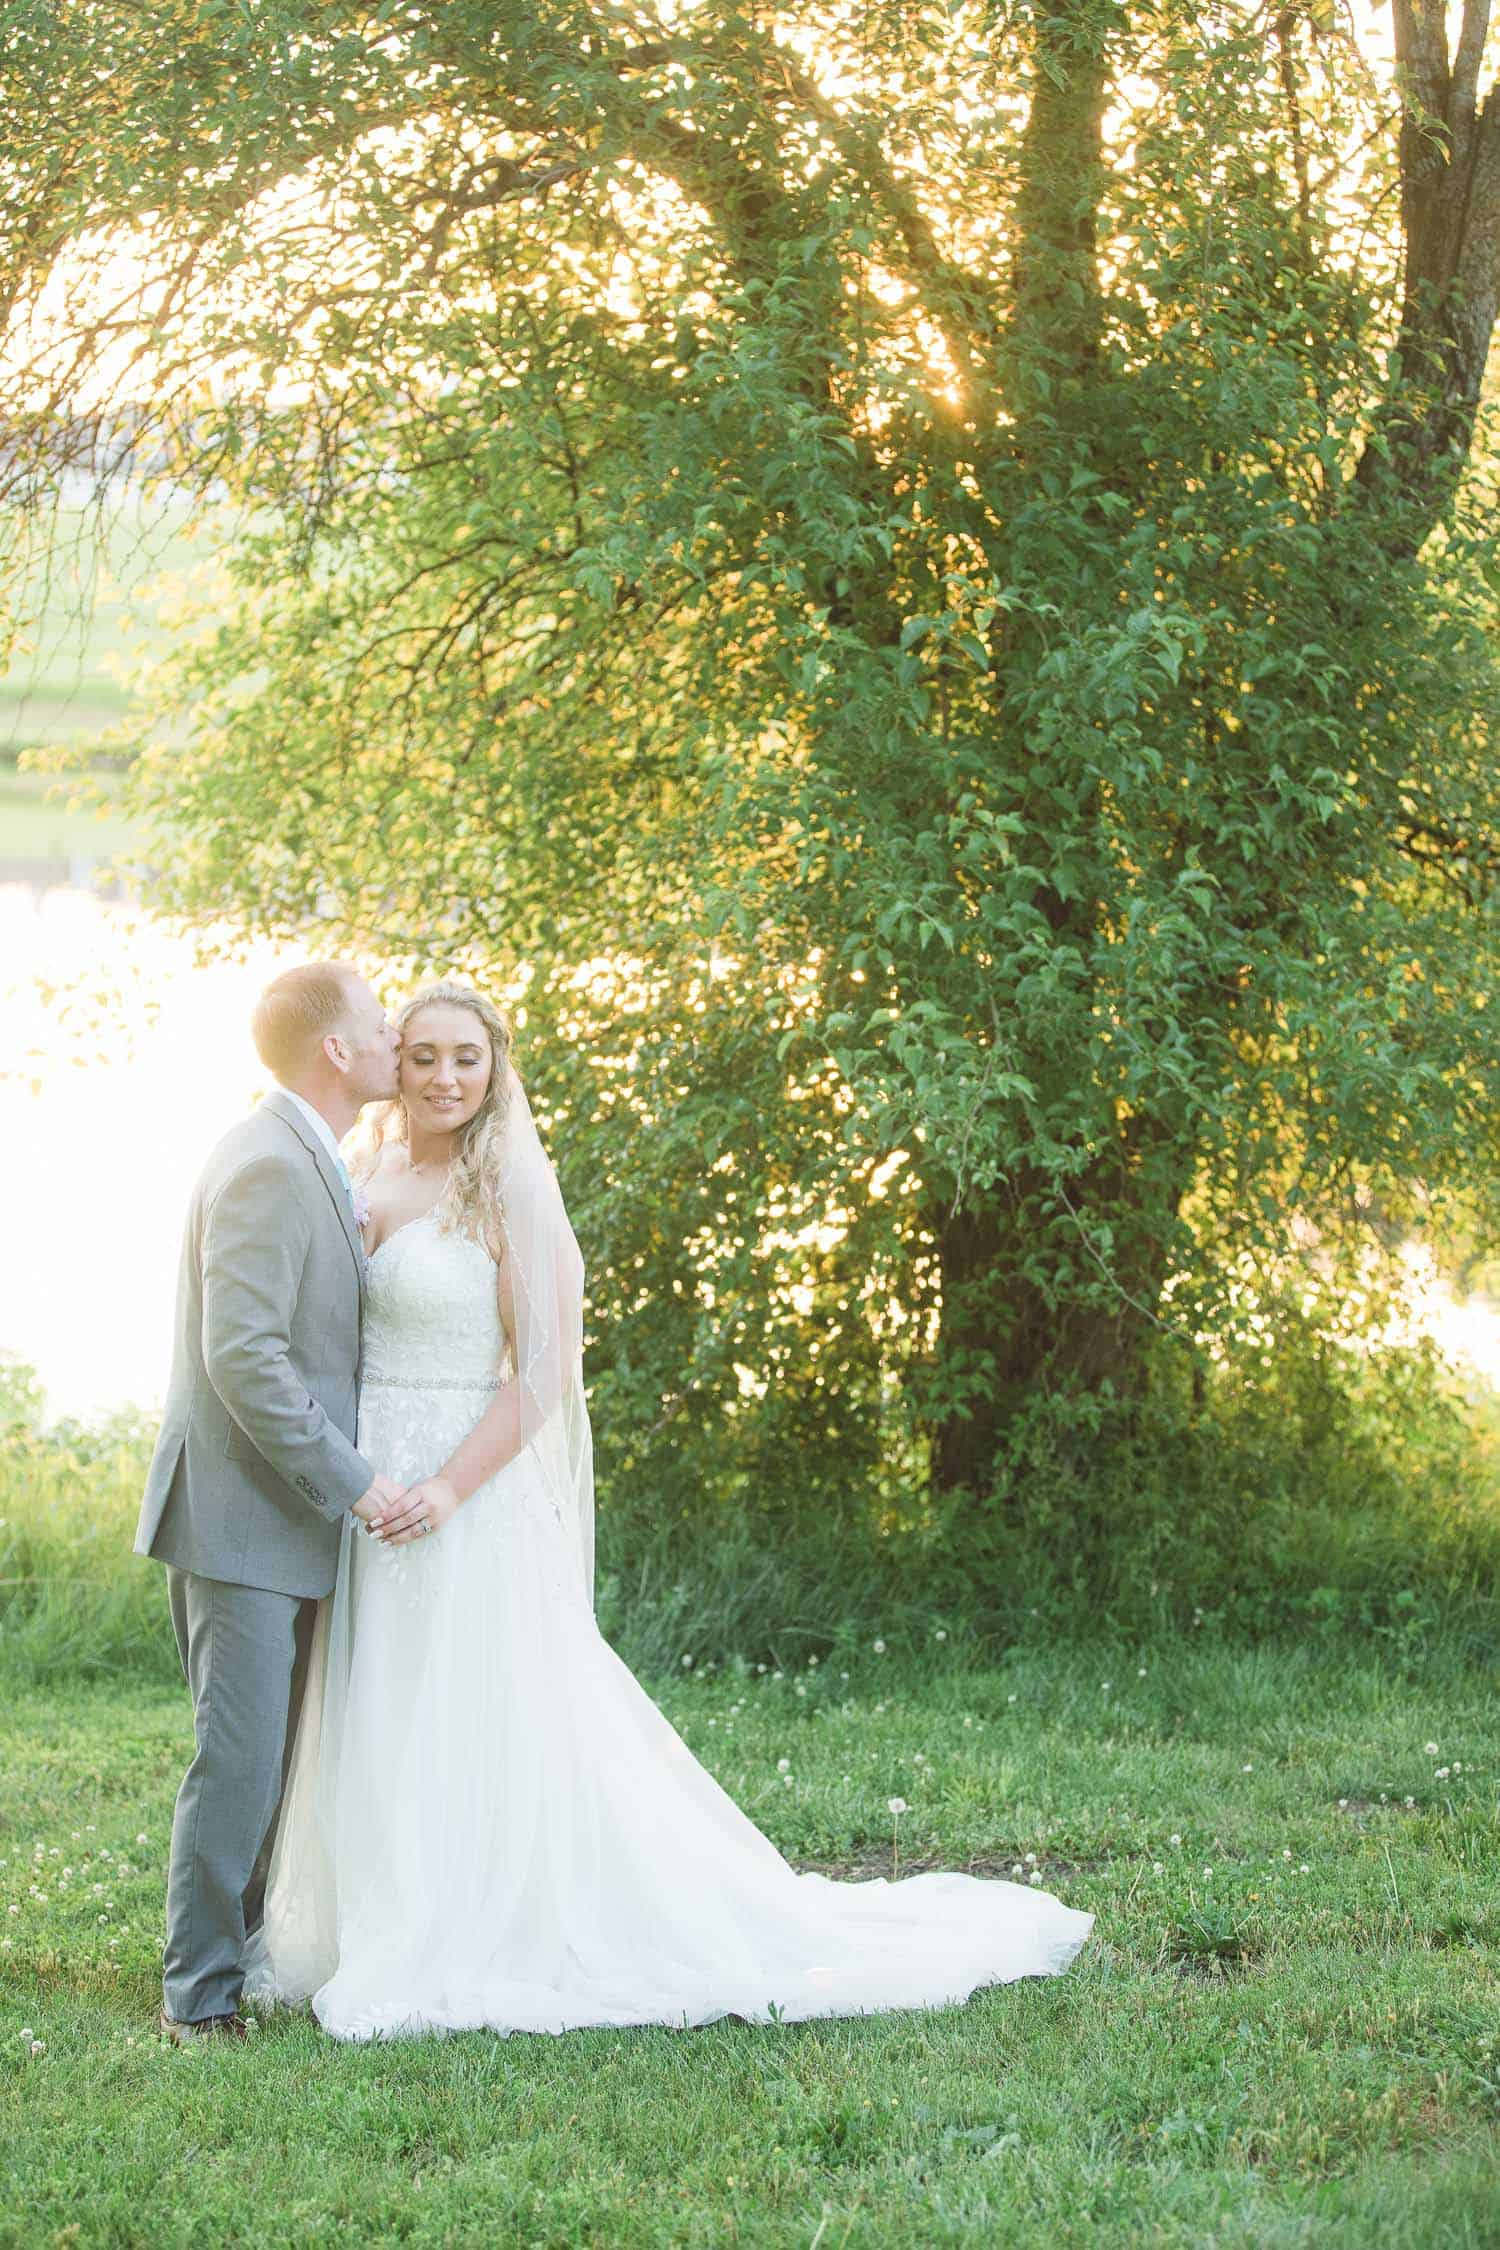 Wedding sunset photos at Mildale Farm overlooking the lake